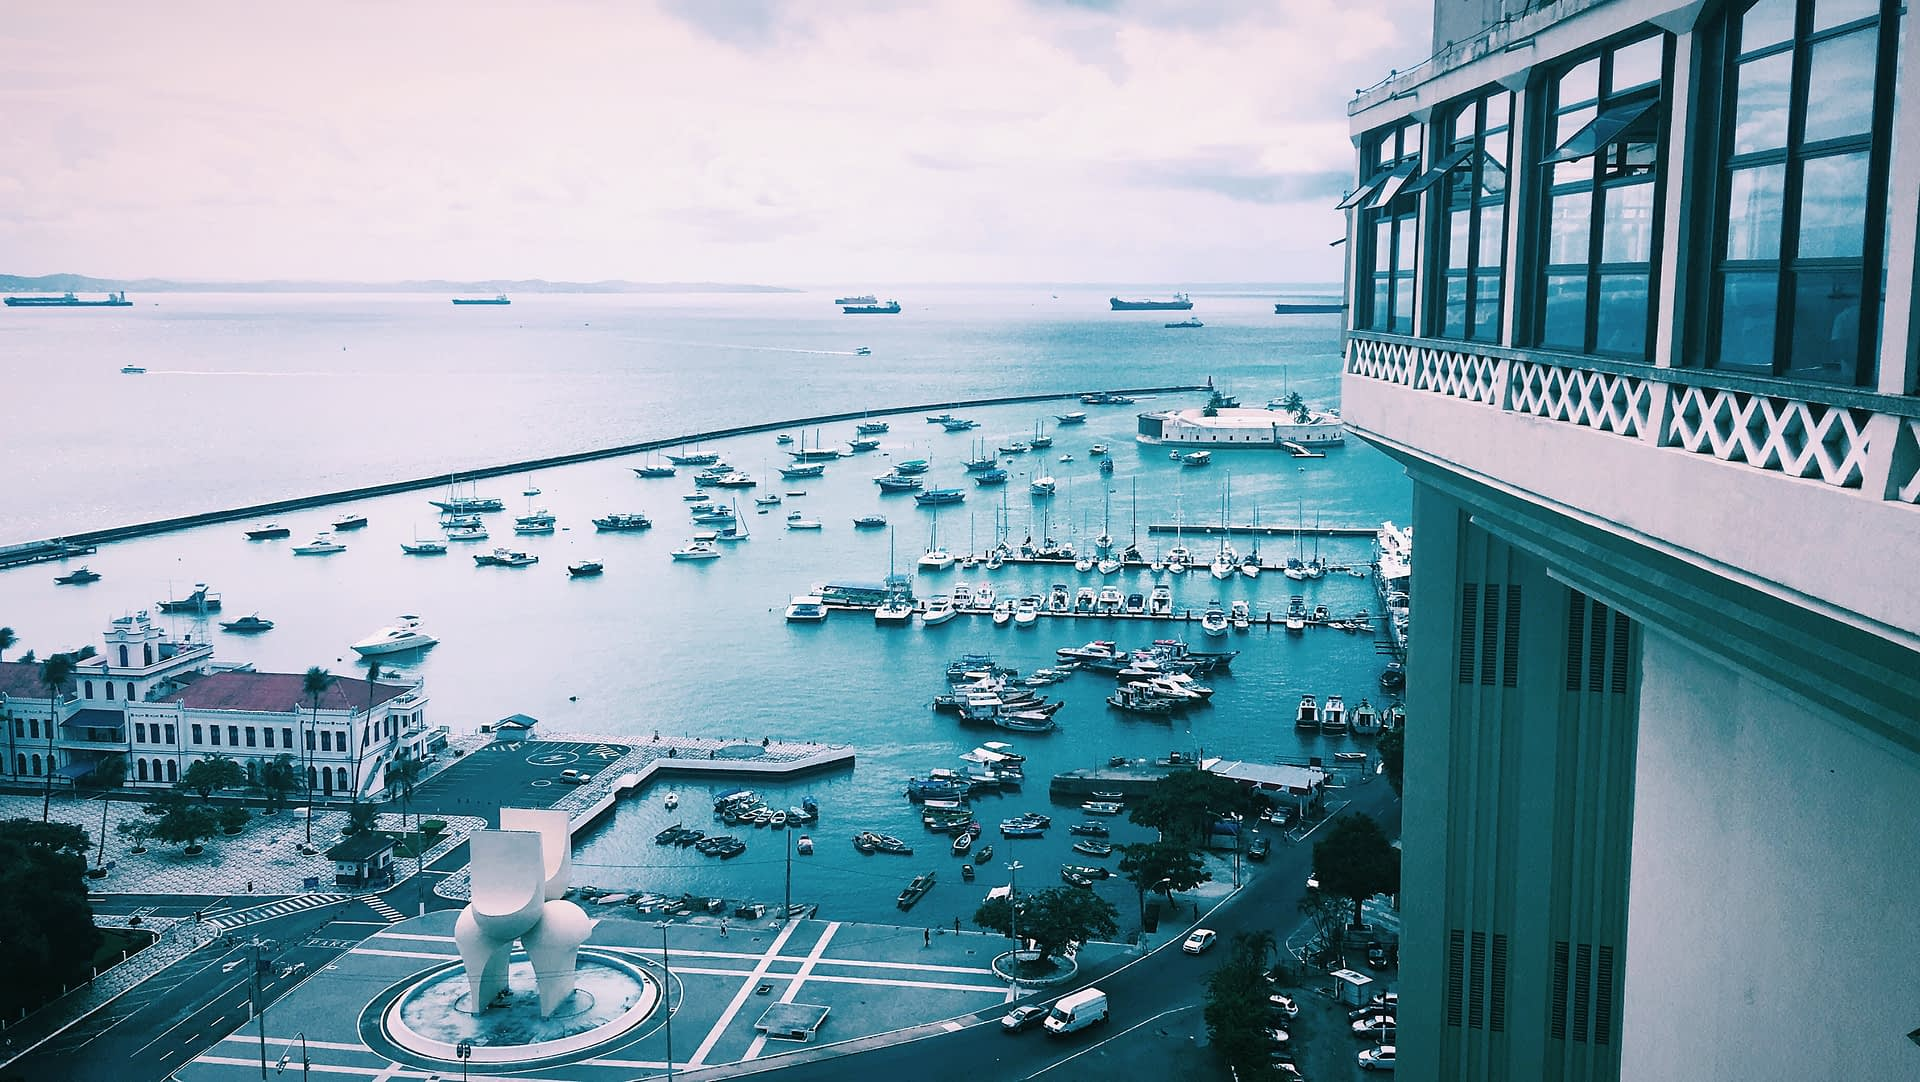 Elevator Salvador - Elevador Lacerda - Image of outdoor elevator overlooking beach port. filled with sail boats